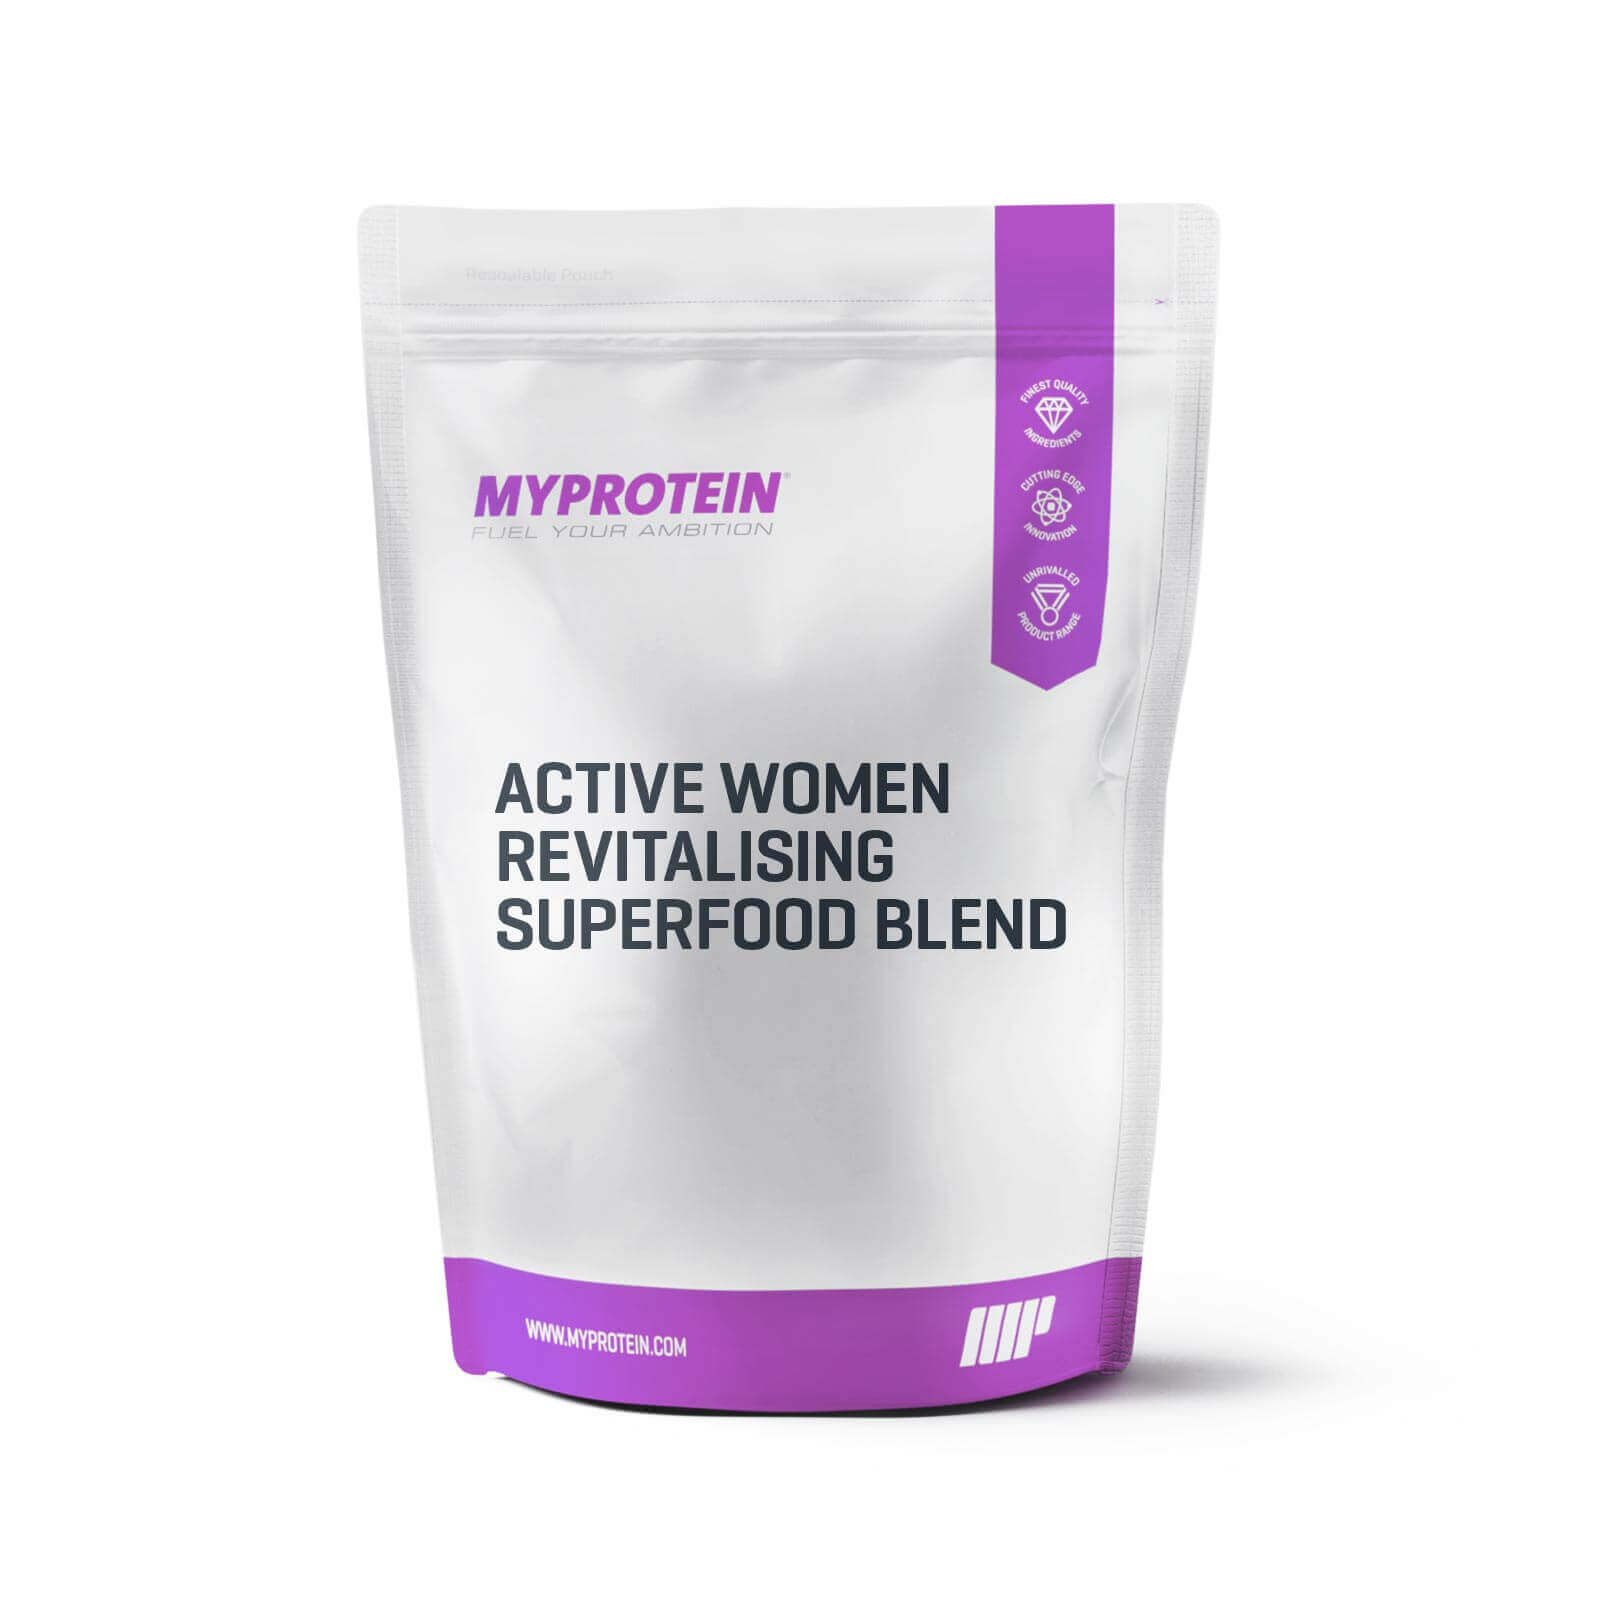 Active Women Revitalising Superfood Blend